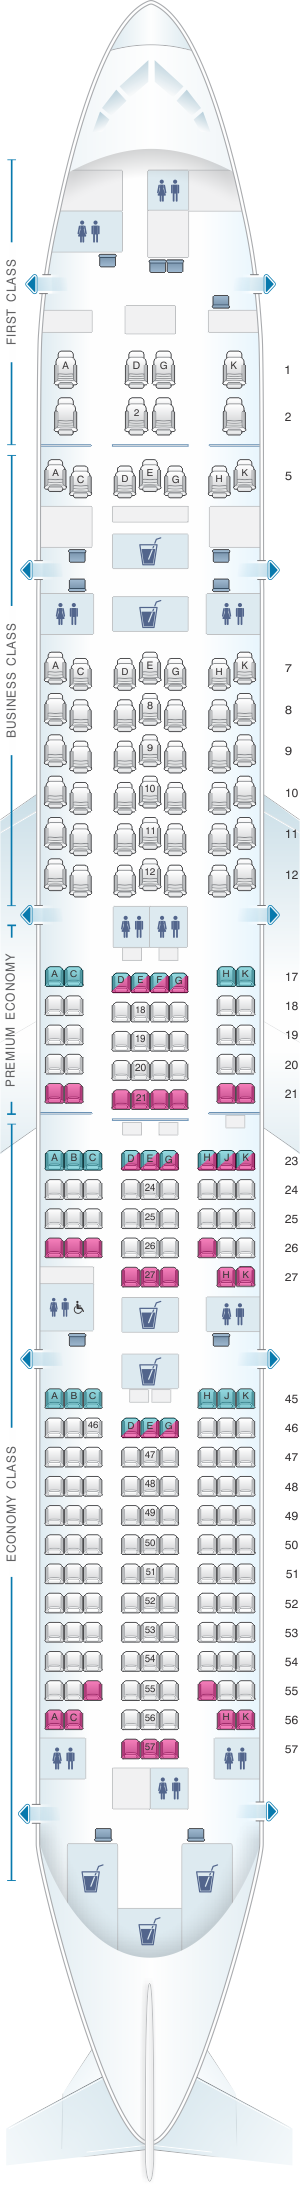 Seat map for Japan Airlines (JAL) Boeing B777 300ER W84